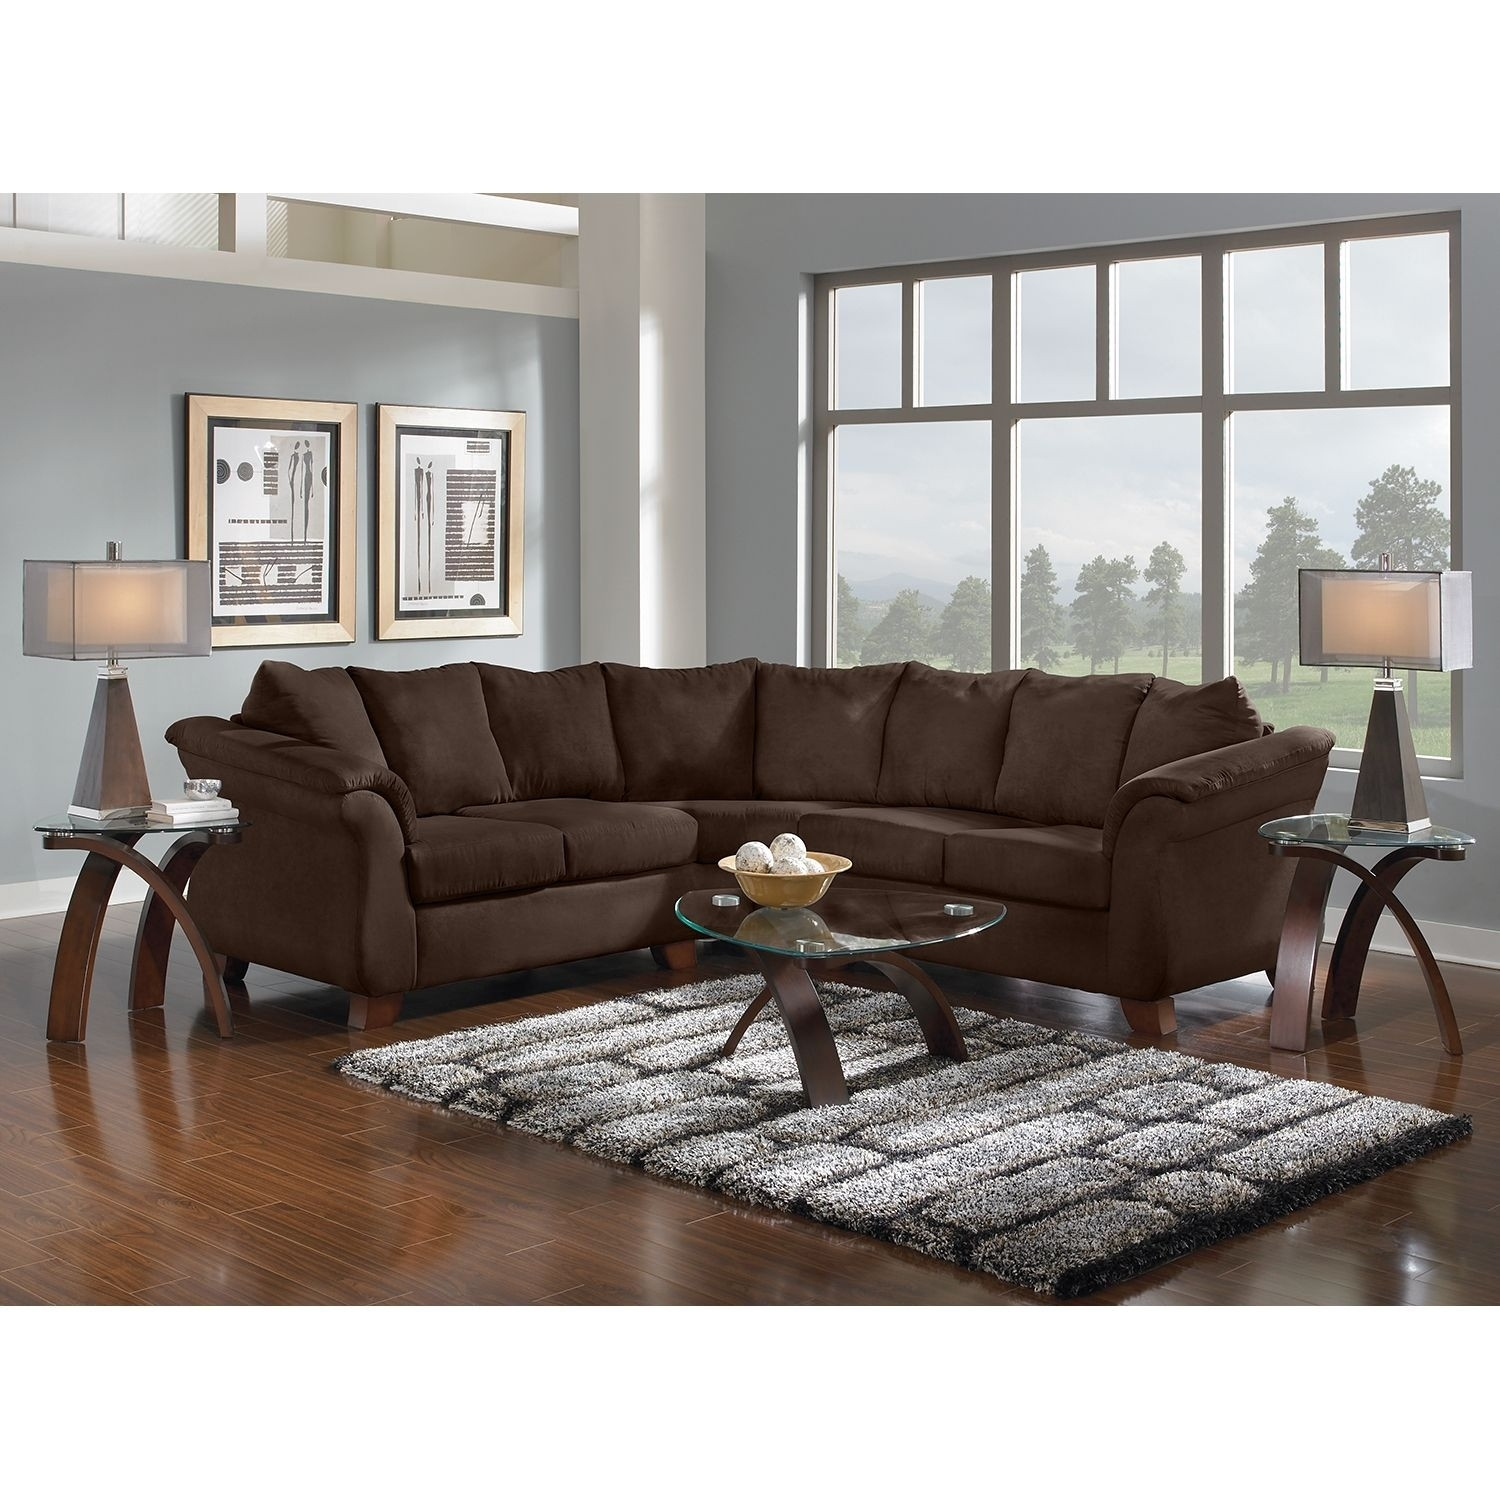 39 Collection Sectional Living Room Ideas Graphics | Living Room regarding Aquarius Dark Grey 2 Piece Sectionals With Raf Chaise (Image 4 of 30)